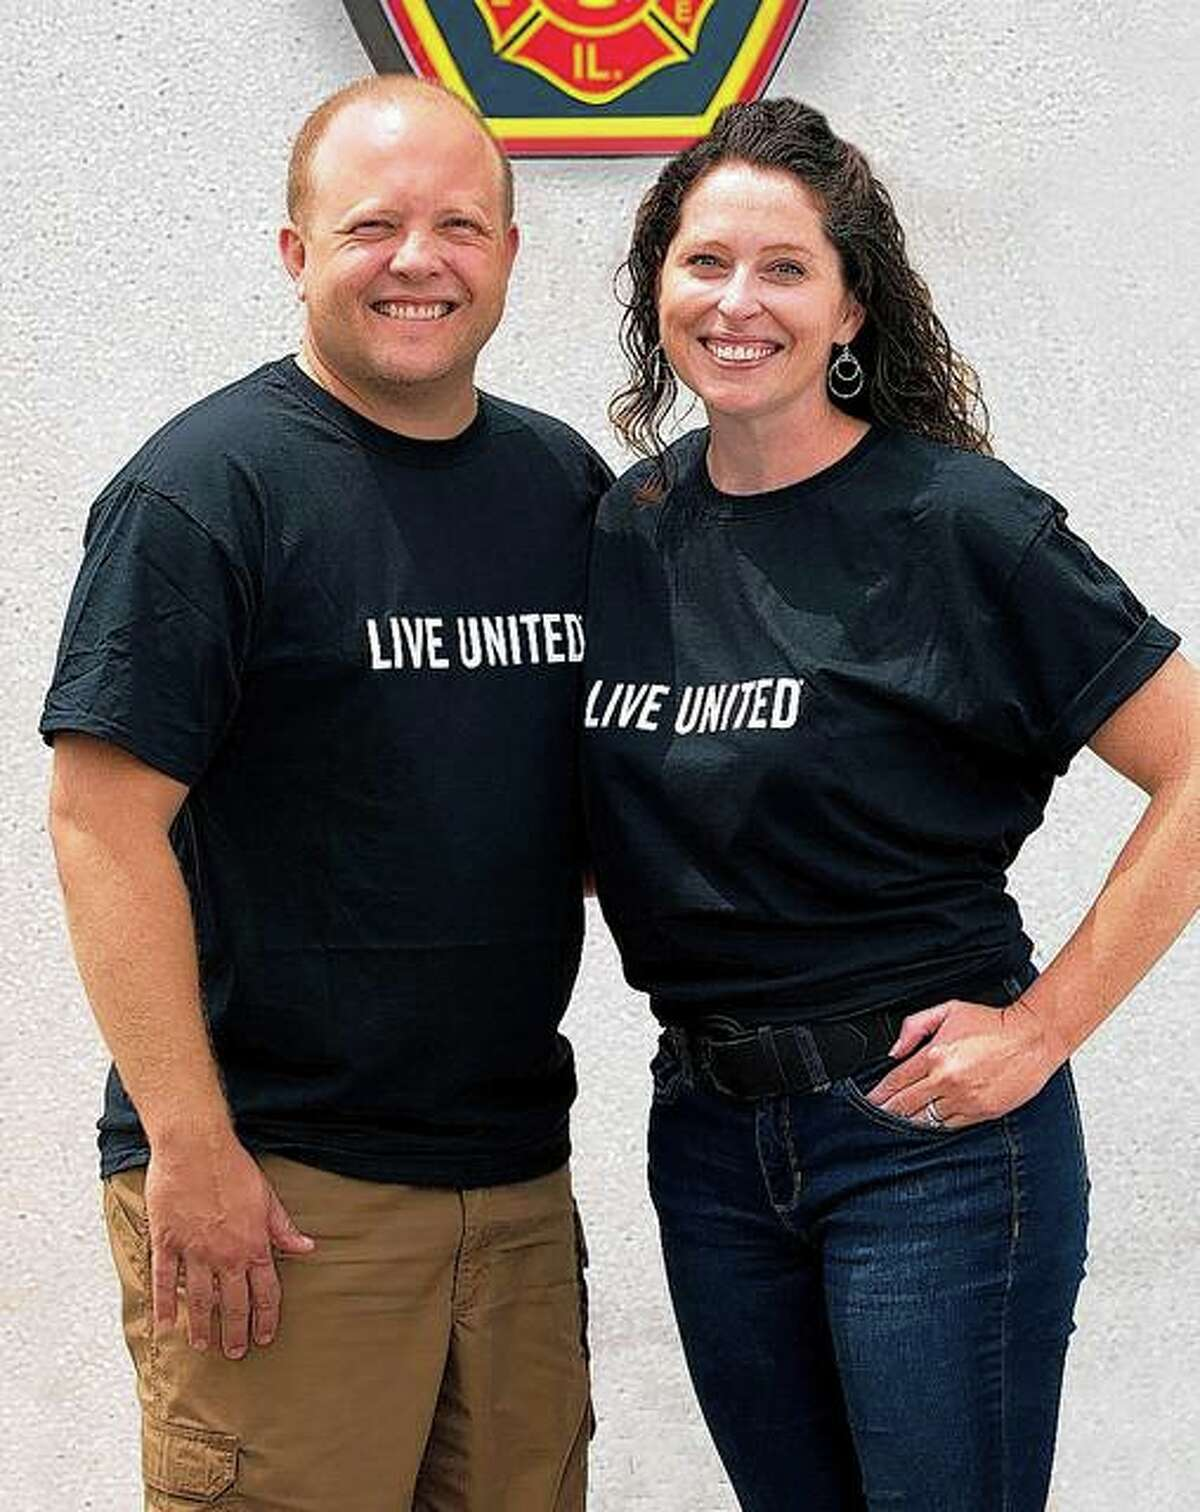 Brian and Amy Gillespie will serve as the 2021 United Way campaign chairs.